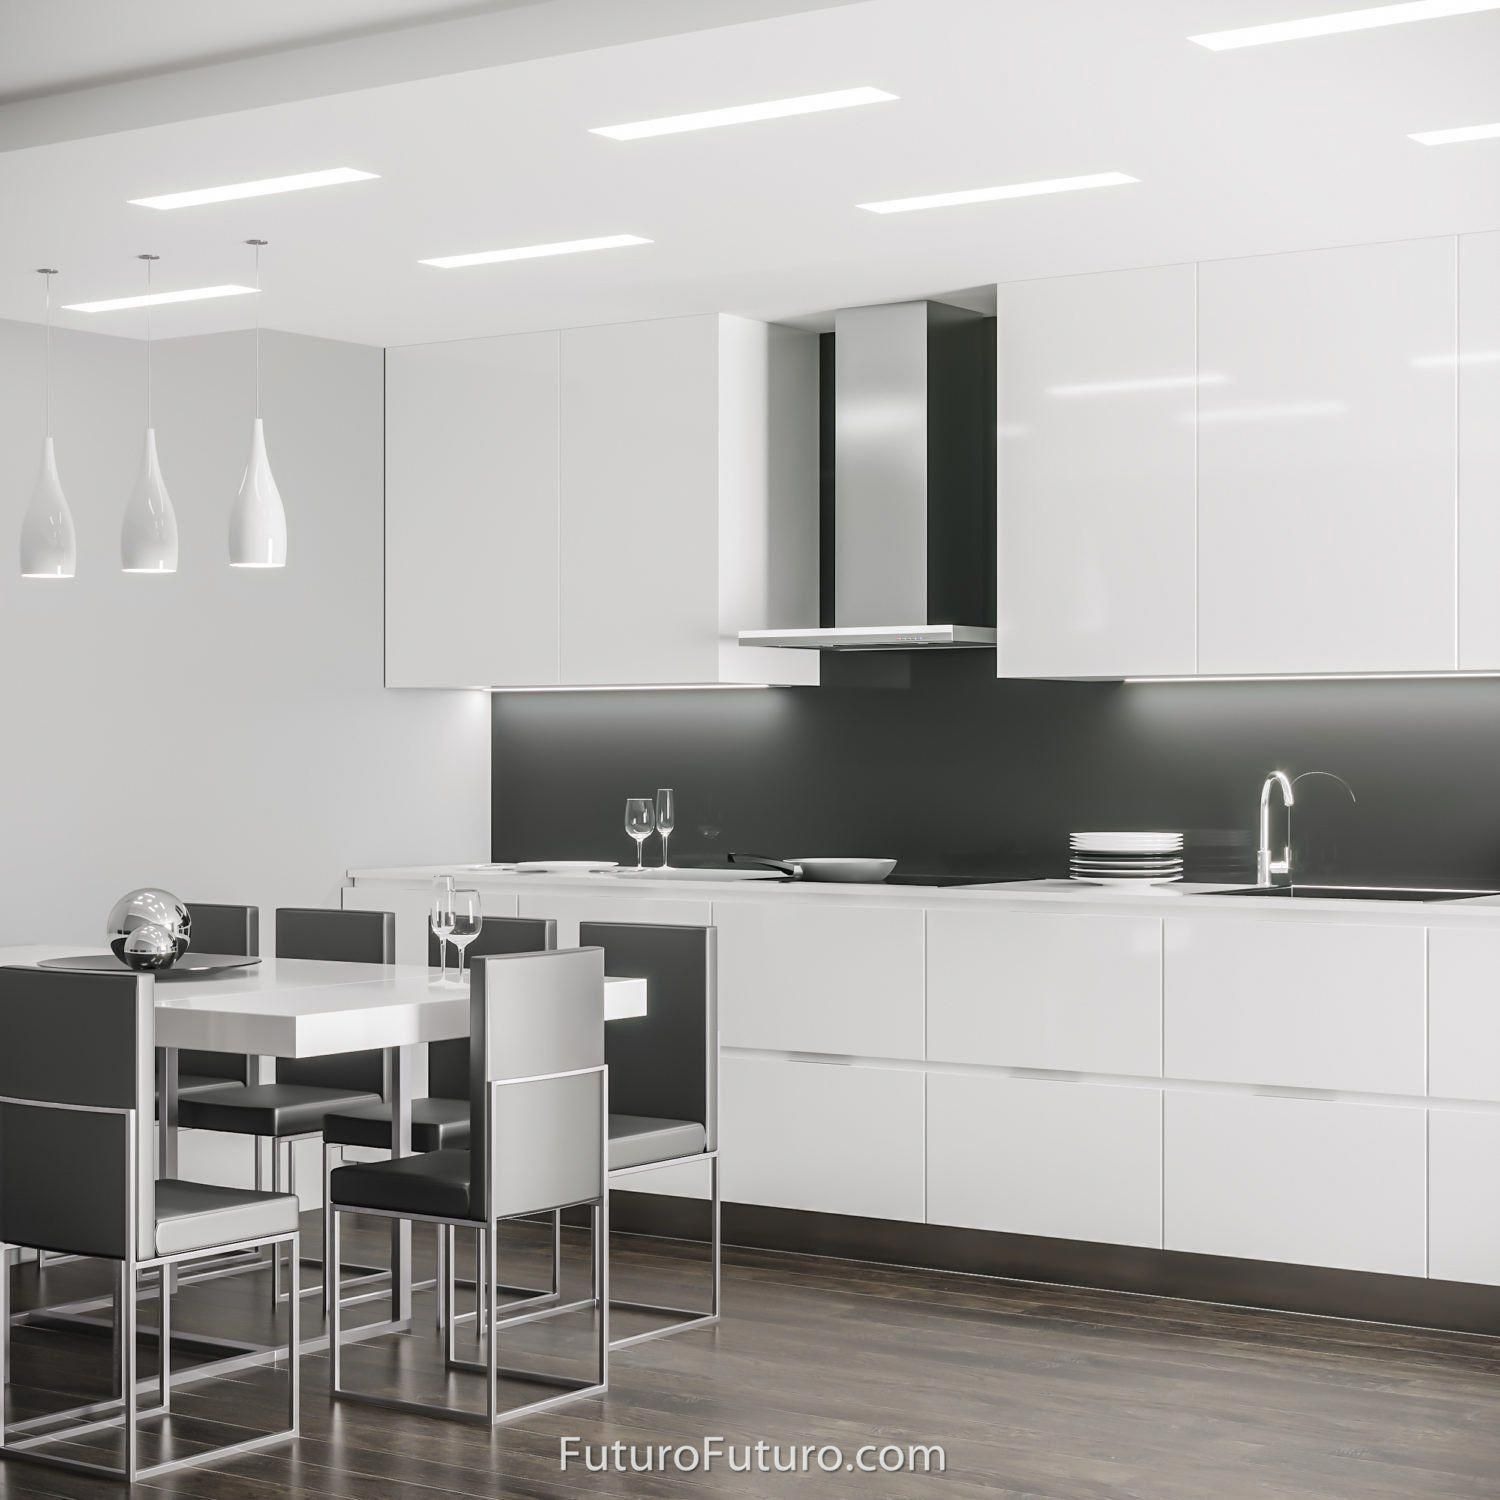 24 Streamline White WallOnly 15 thick the Streamline series range hoods by Futuro Futuro are the perfect finishing touch for the modern kitchen